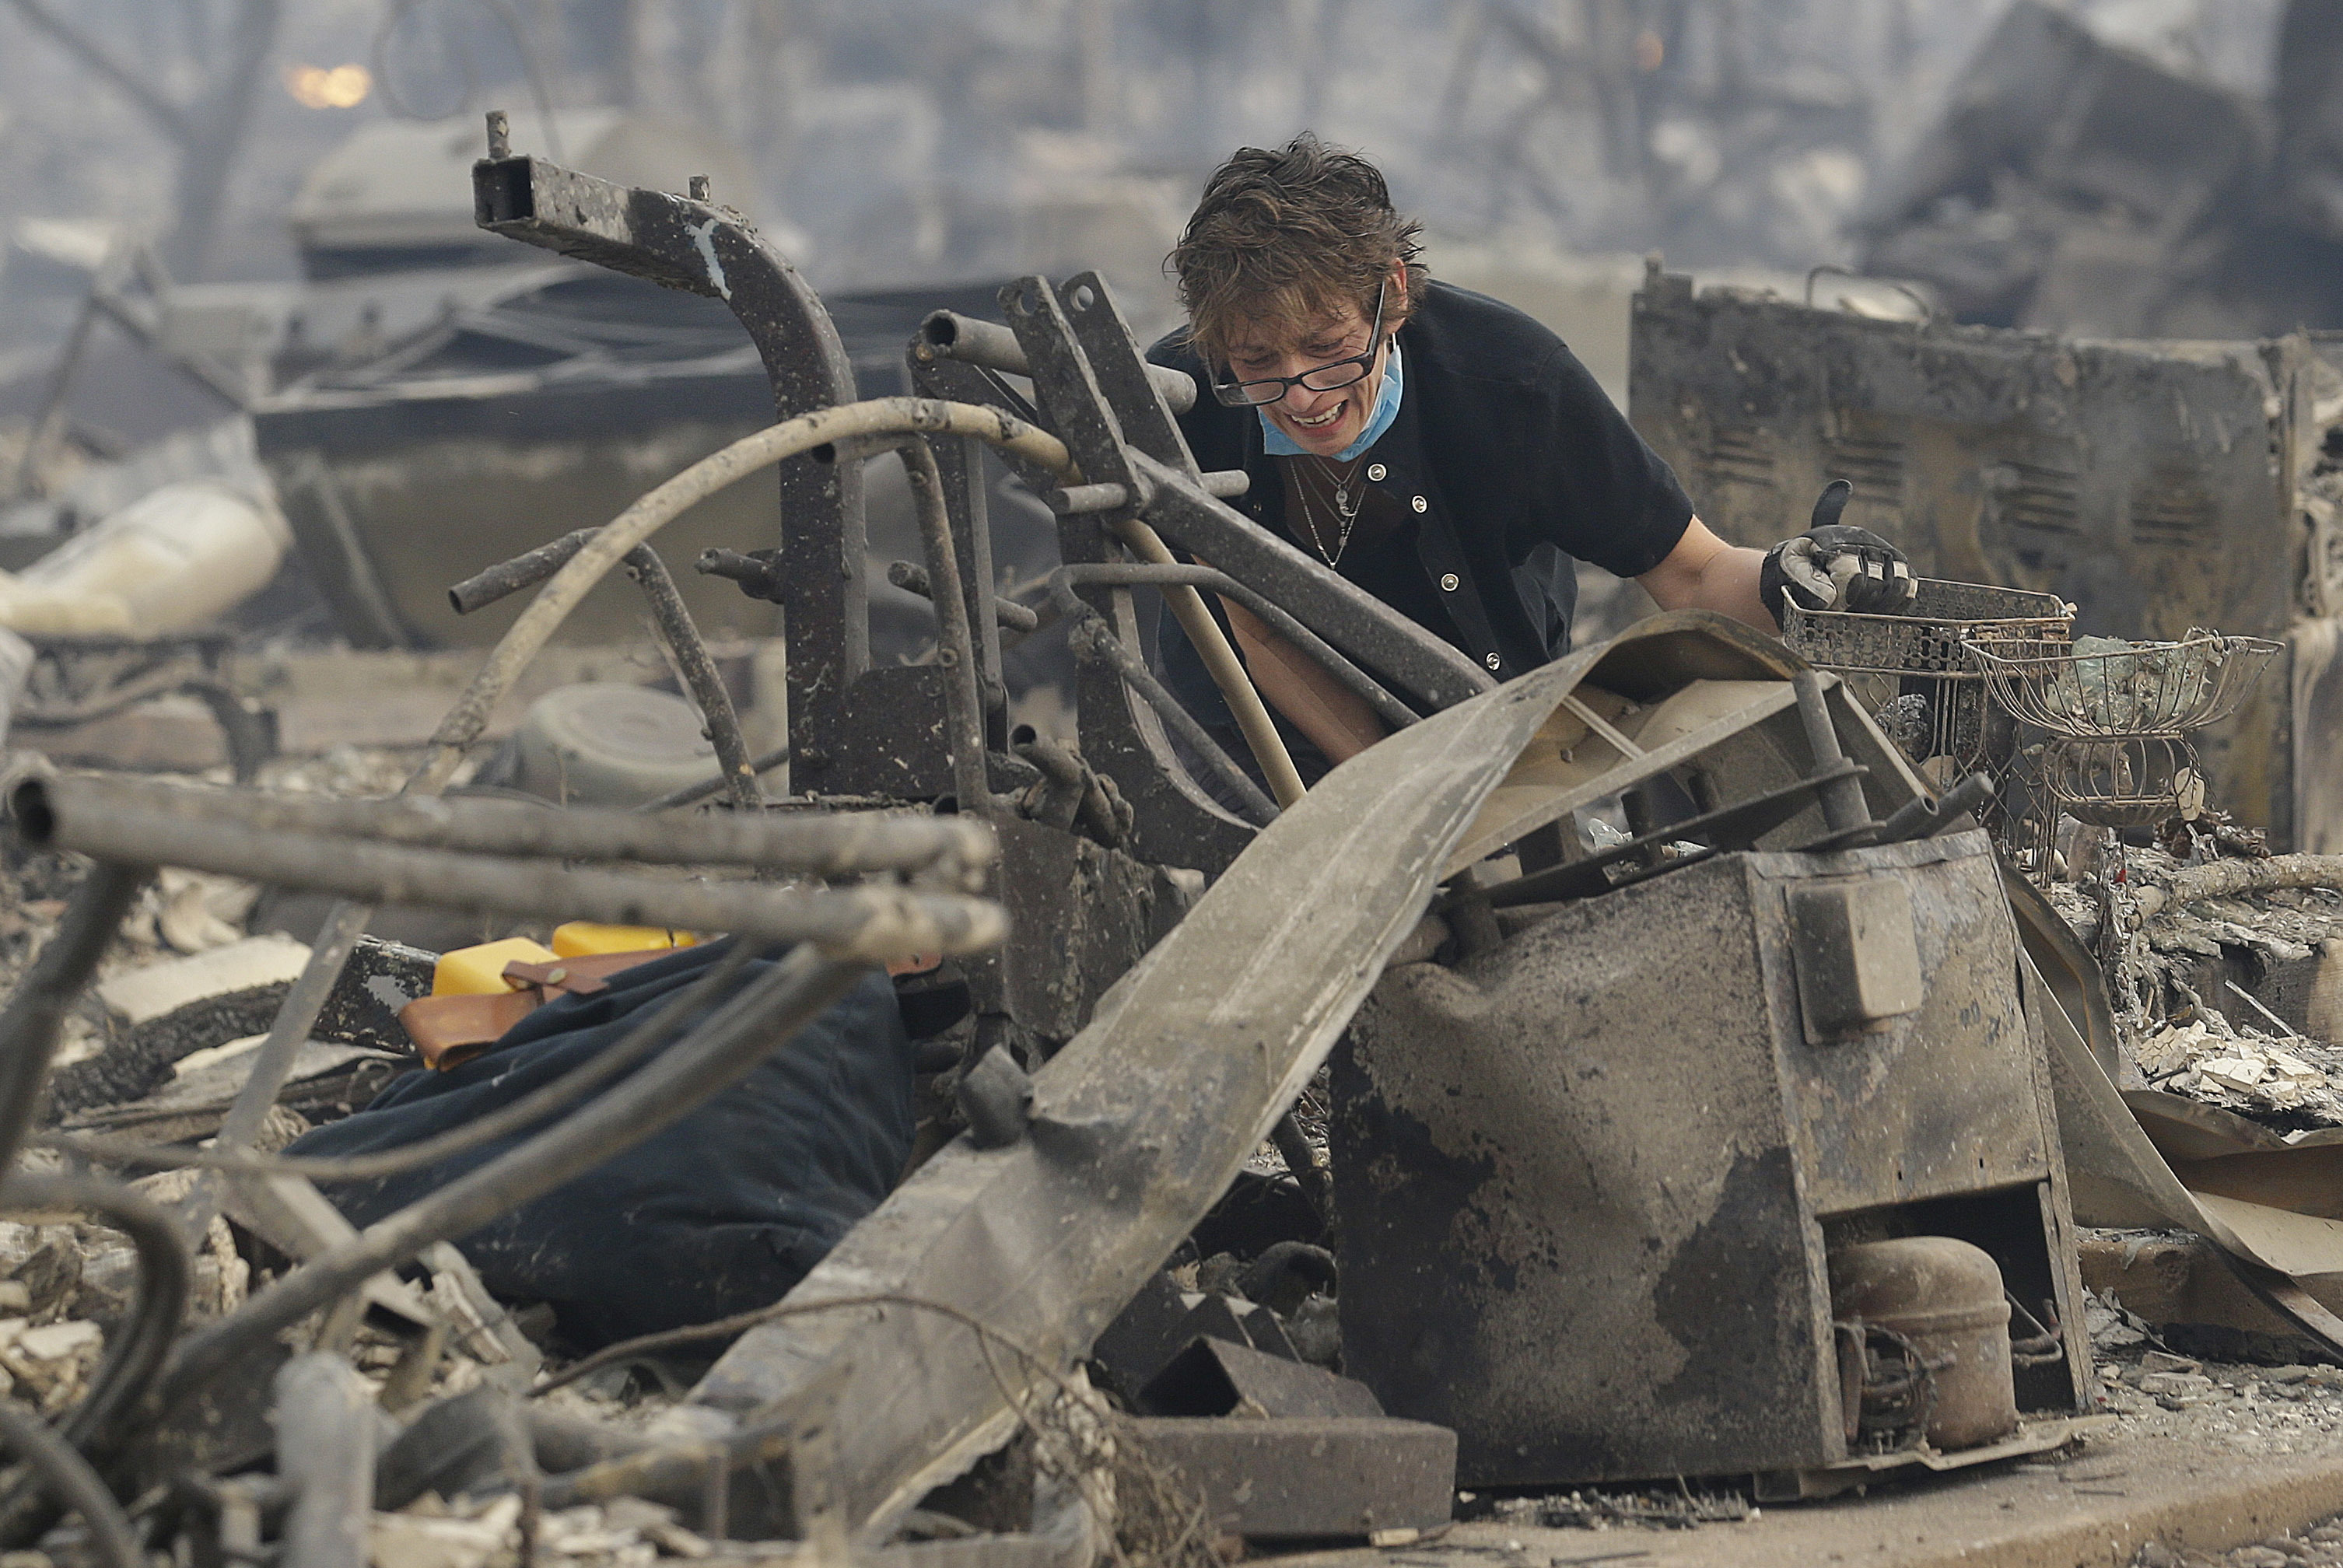 Kristine Pond searches the remains of her family's home destroyed by fires in Santa Rosa, Calif., Oct. 9, 2017.